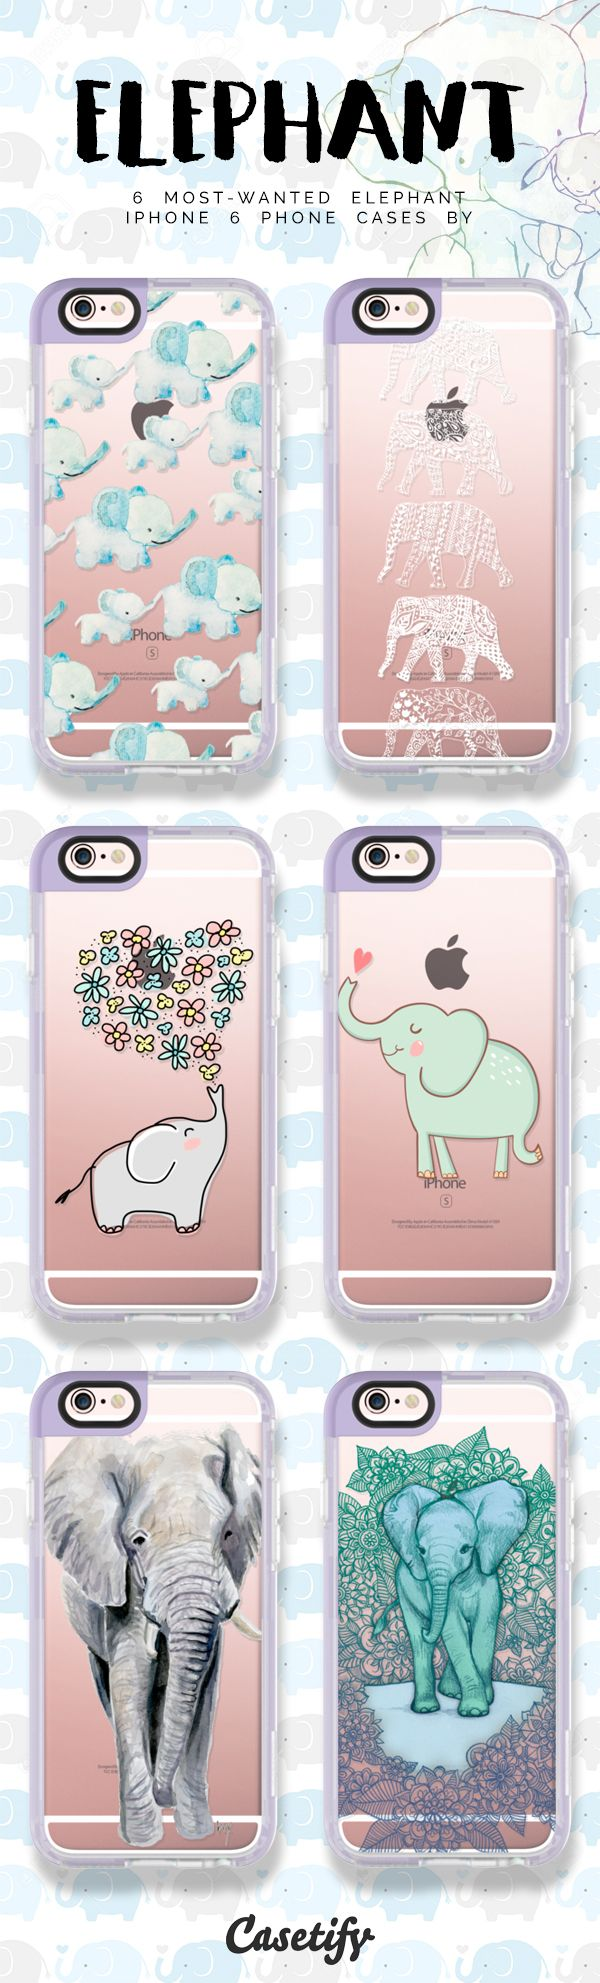 Top 6 elephant iPhone 6 protective phone case designs | Click through to see more iPhone phone case designs >>> https://www.casetify.com/artworks/5yah4WieDK #animal | @casetify